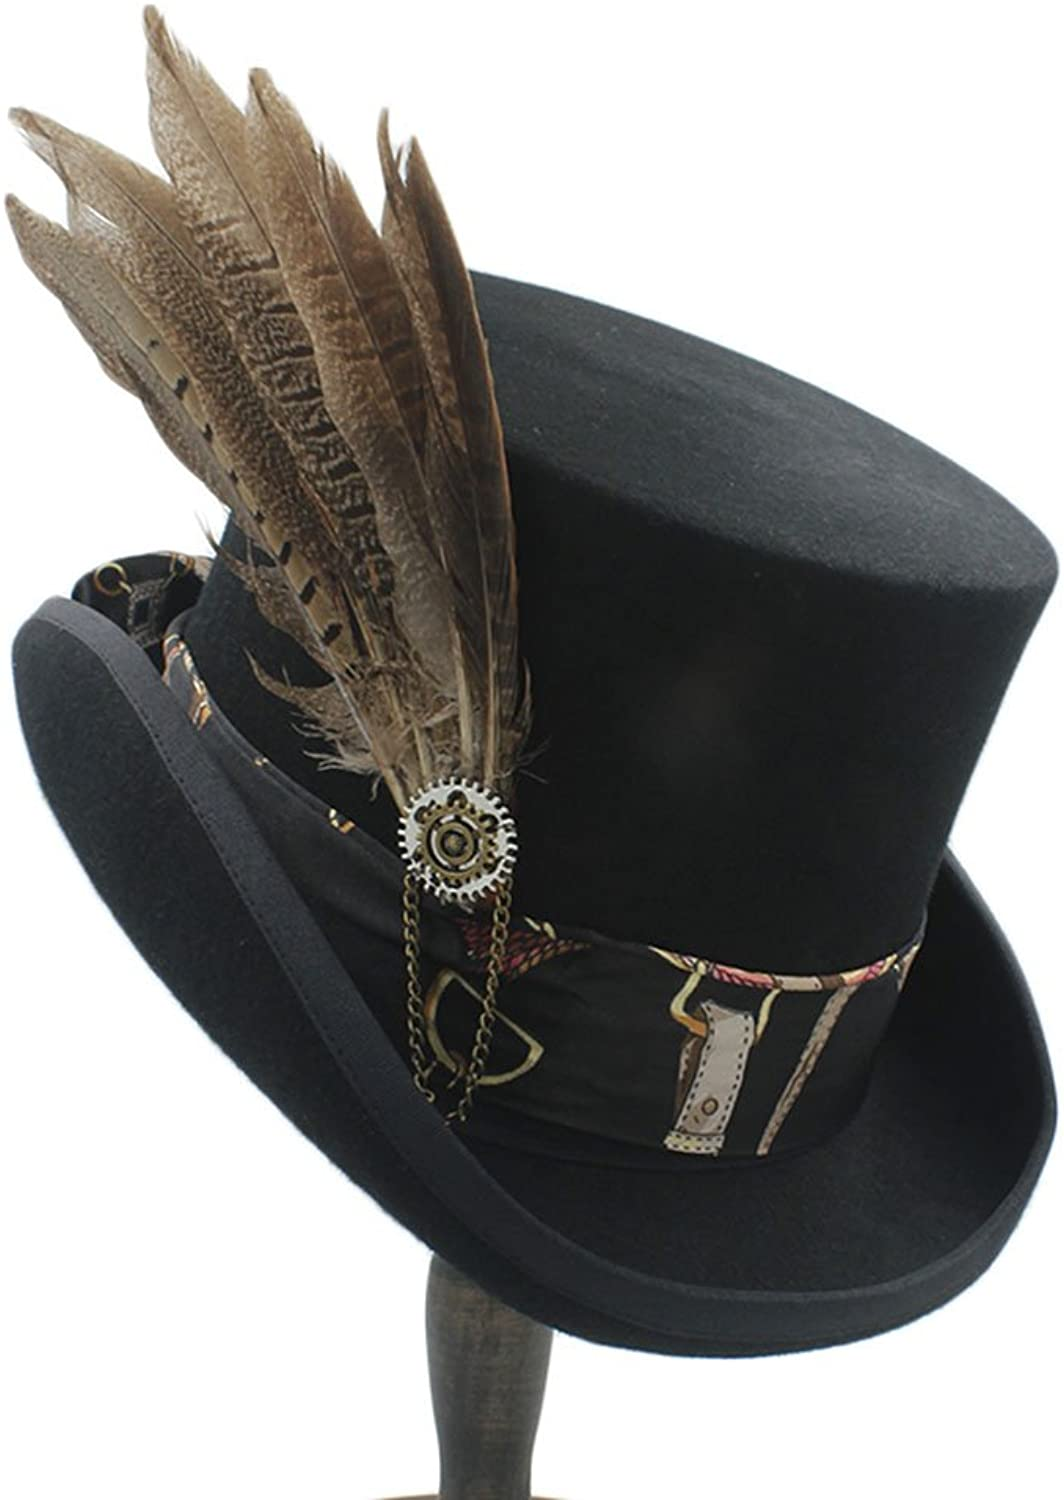 SKKMALL women wen fodora steampunk hat with Gear wheel top hat